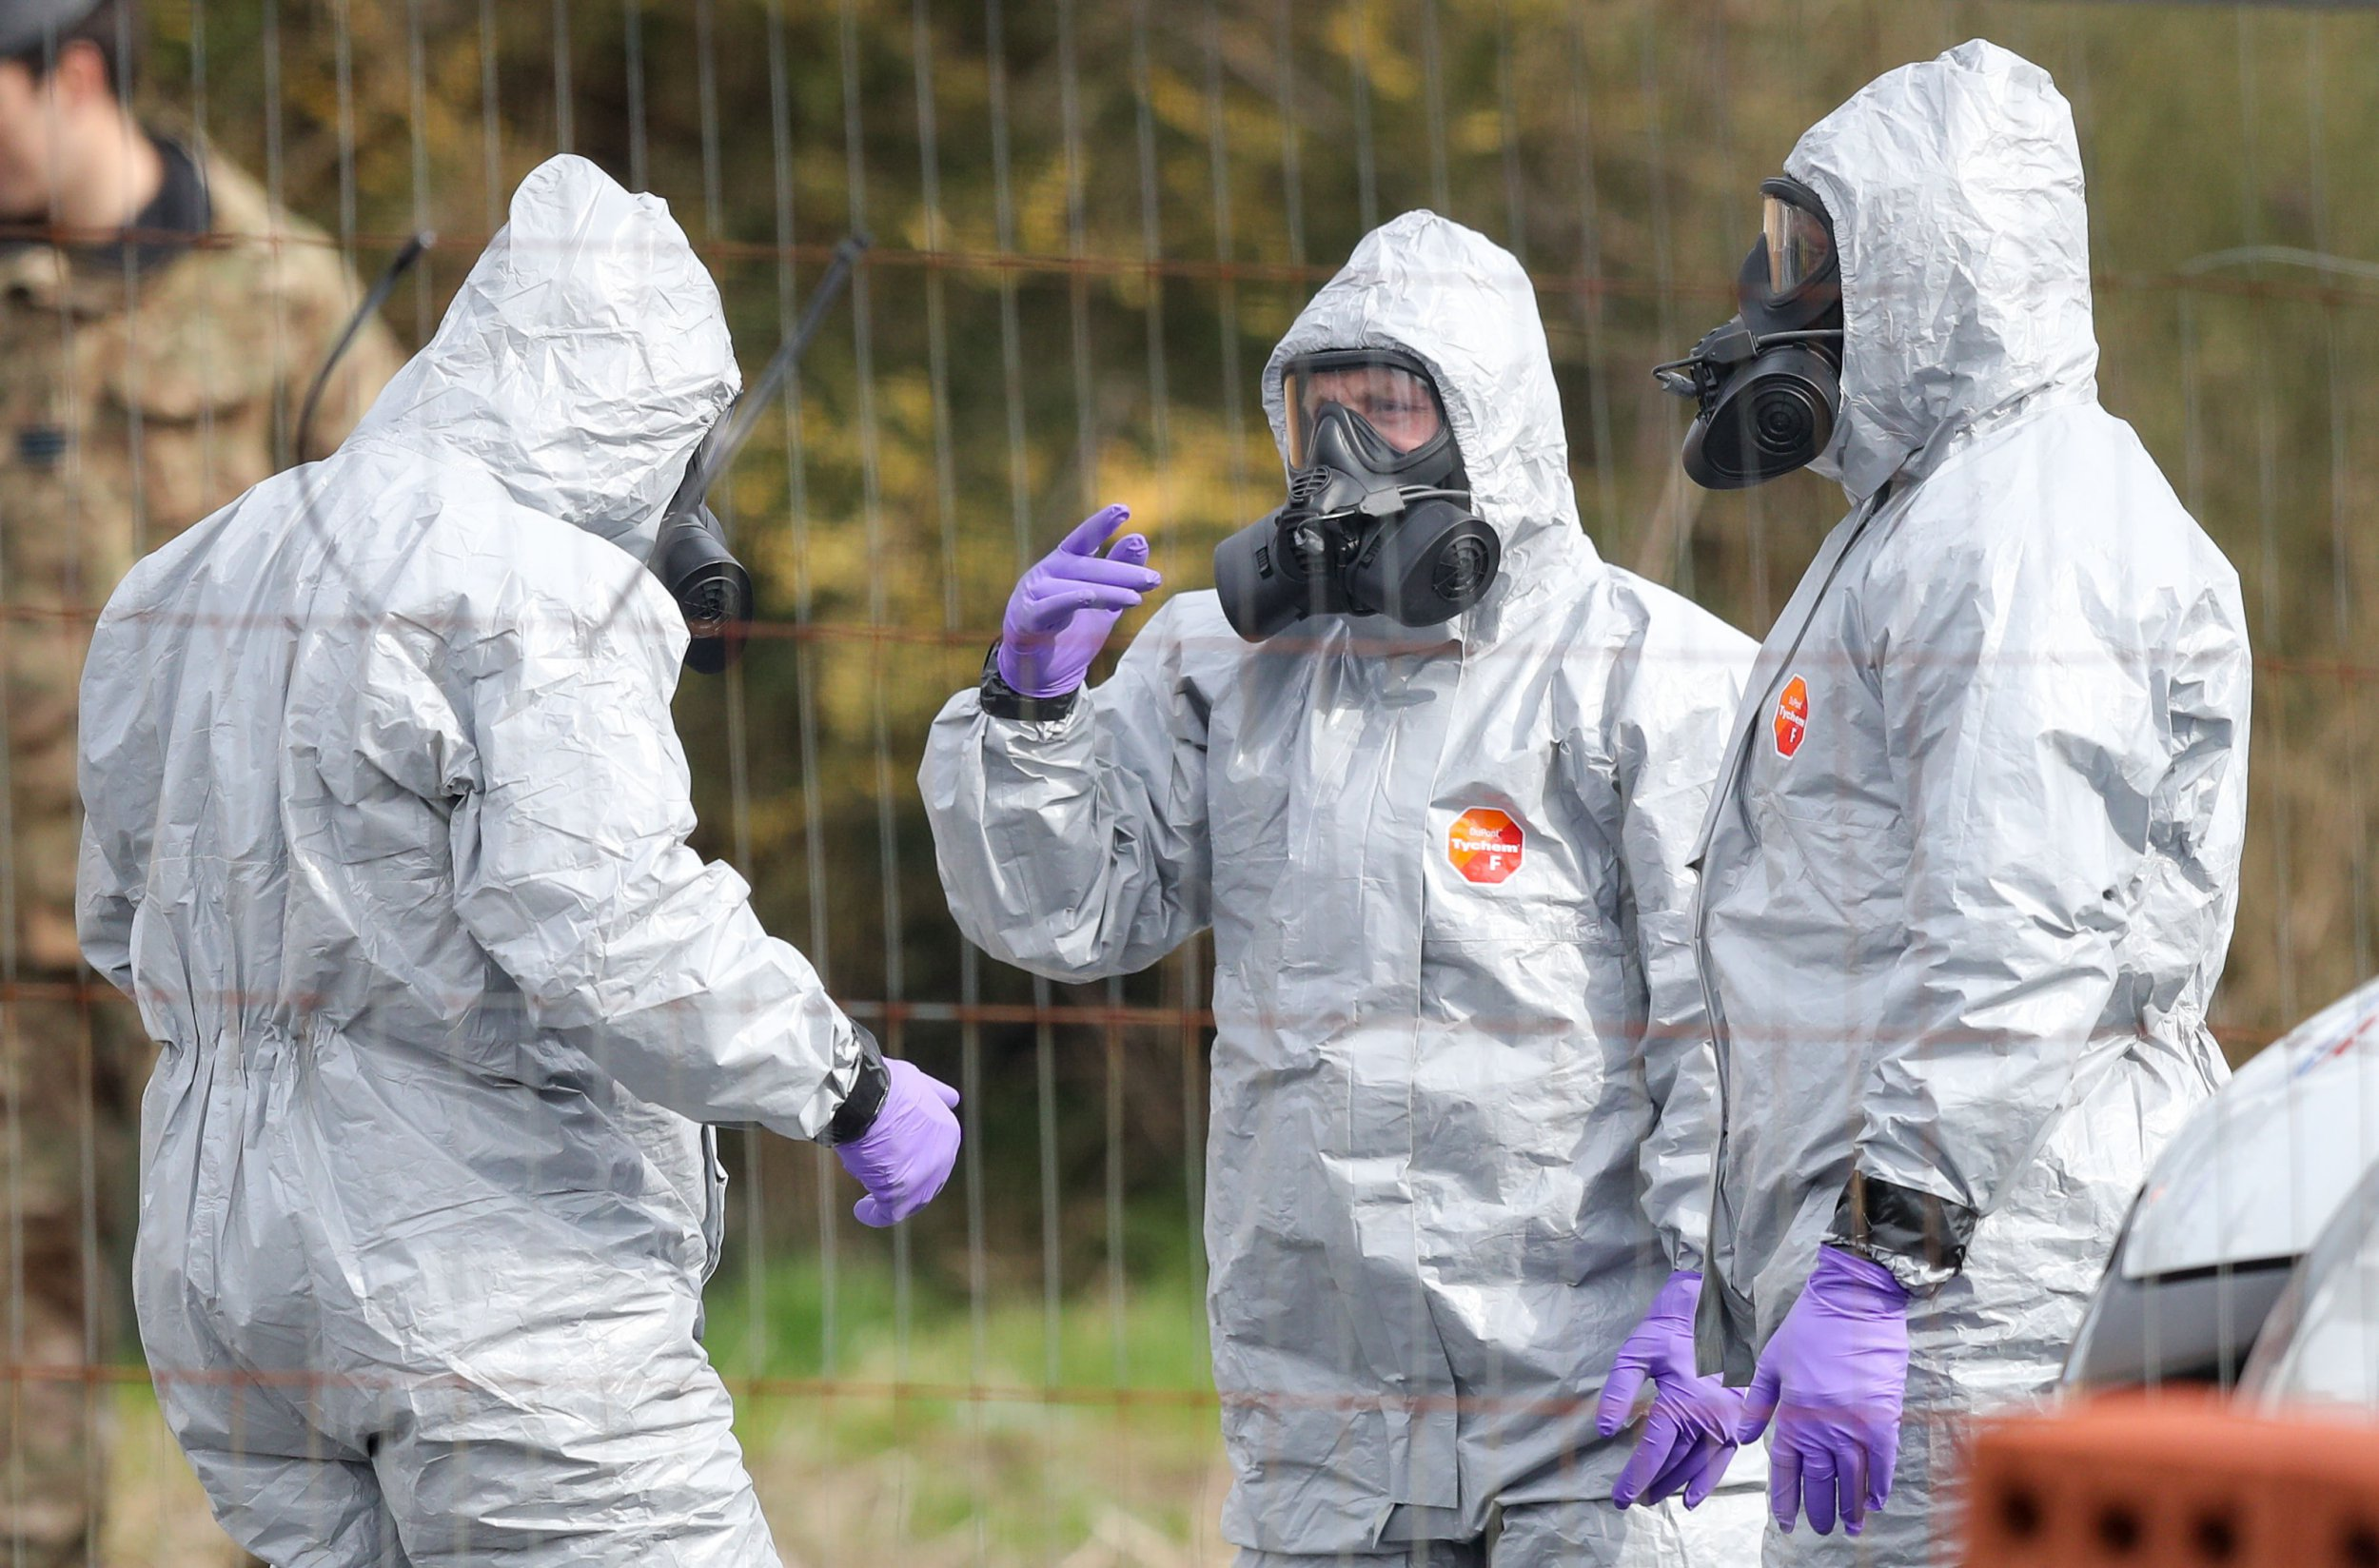 Soldiers wearing protective clothing in Hyde Road, Gillingham, Dorset, as the investigation into the suspected nerve agent attack on Russian double agent Sergei Skripal continues PRESS ASSOCIATION Photo. Picture date: Wednesday March 14, 2018. See PA story POLICE Substance. Photo credit should read: Andrew Matthews/PA Wire